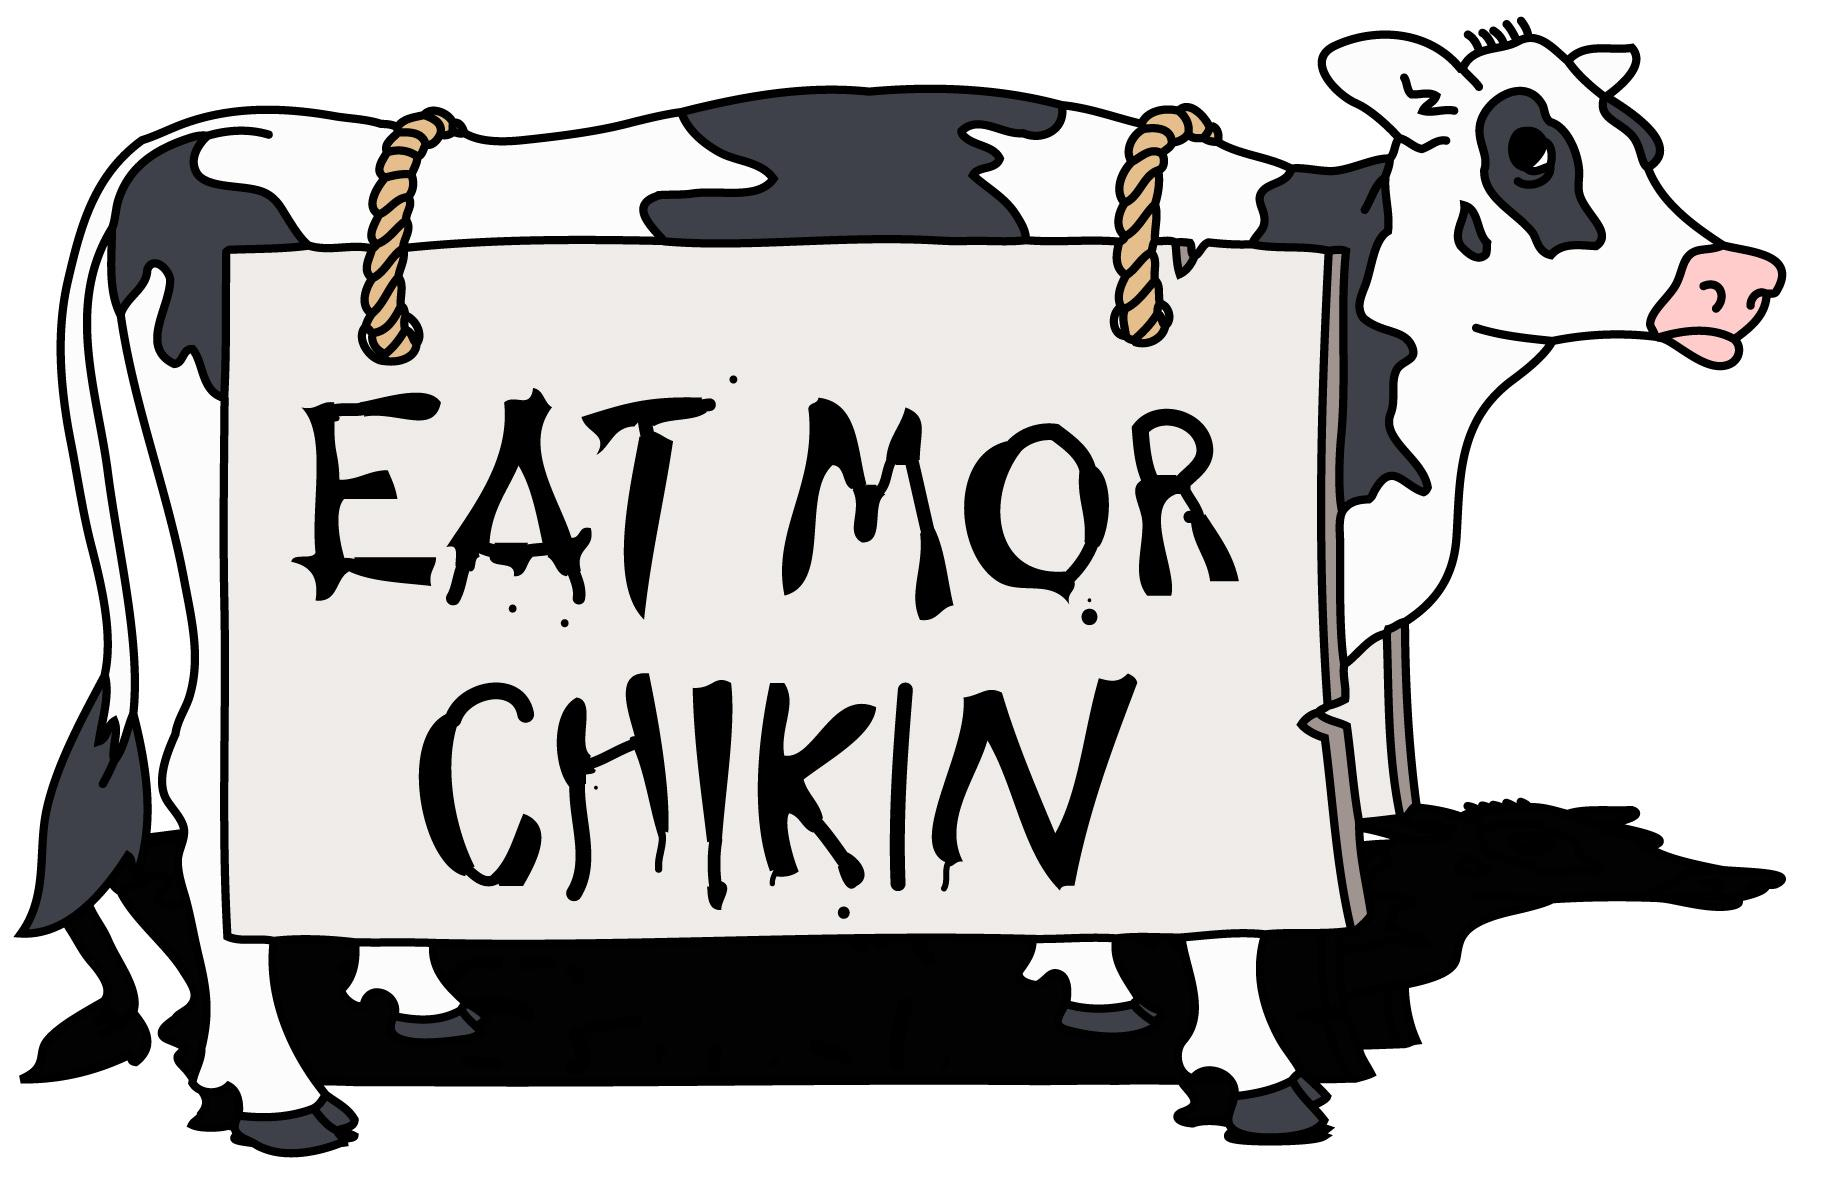 The kirkwood call chikin wars for The kirkwood